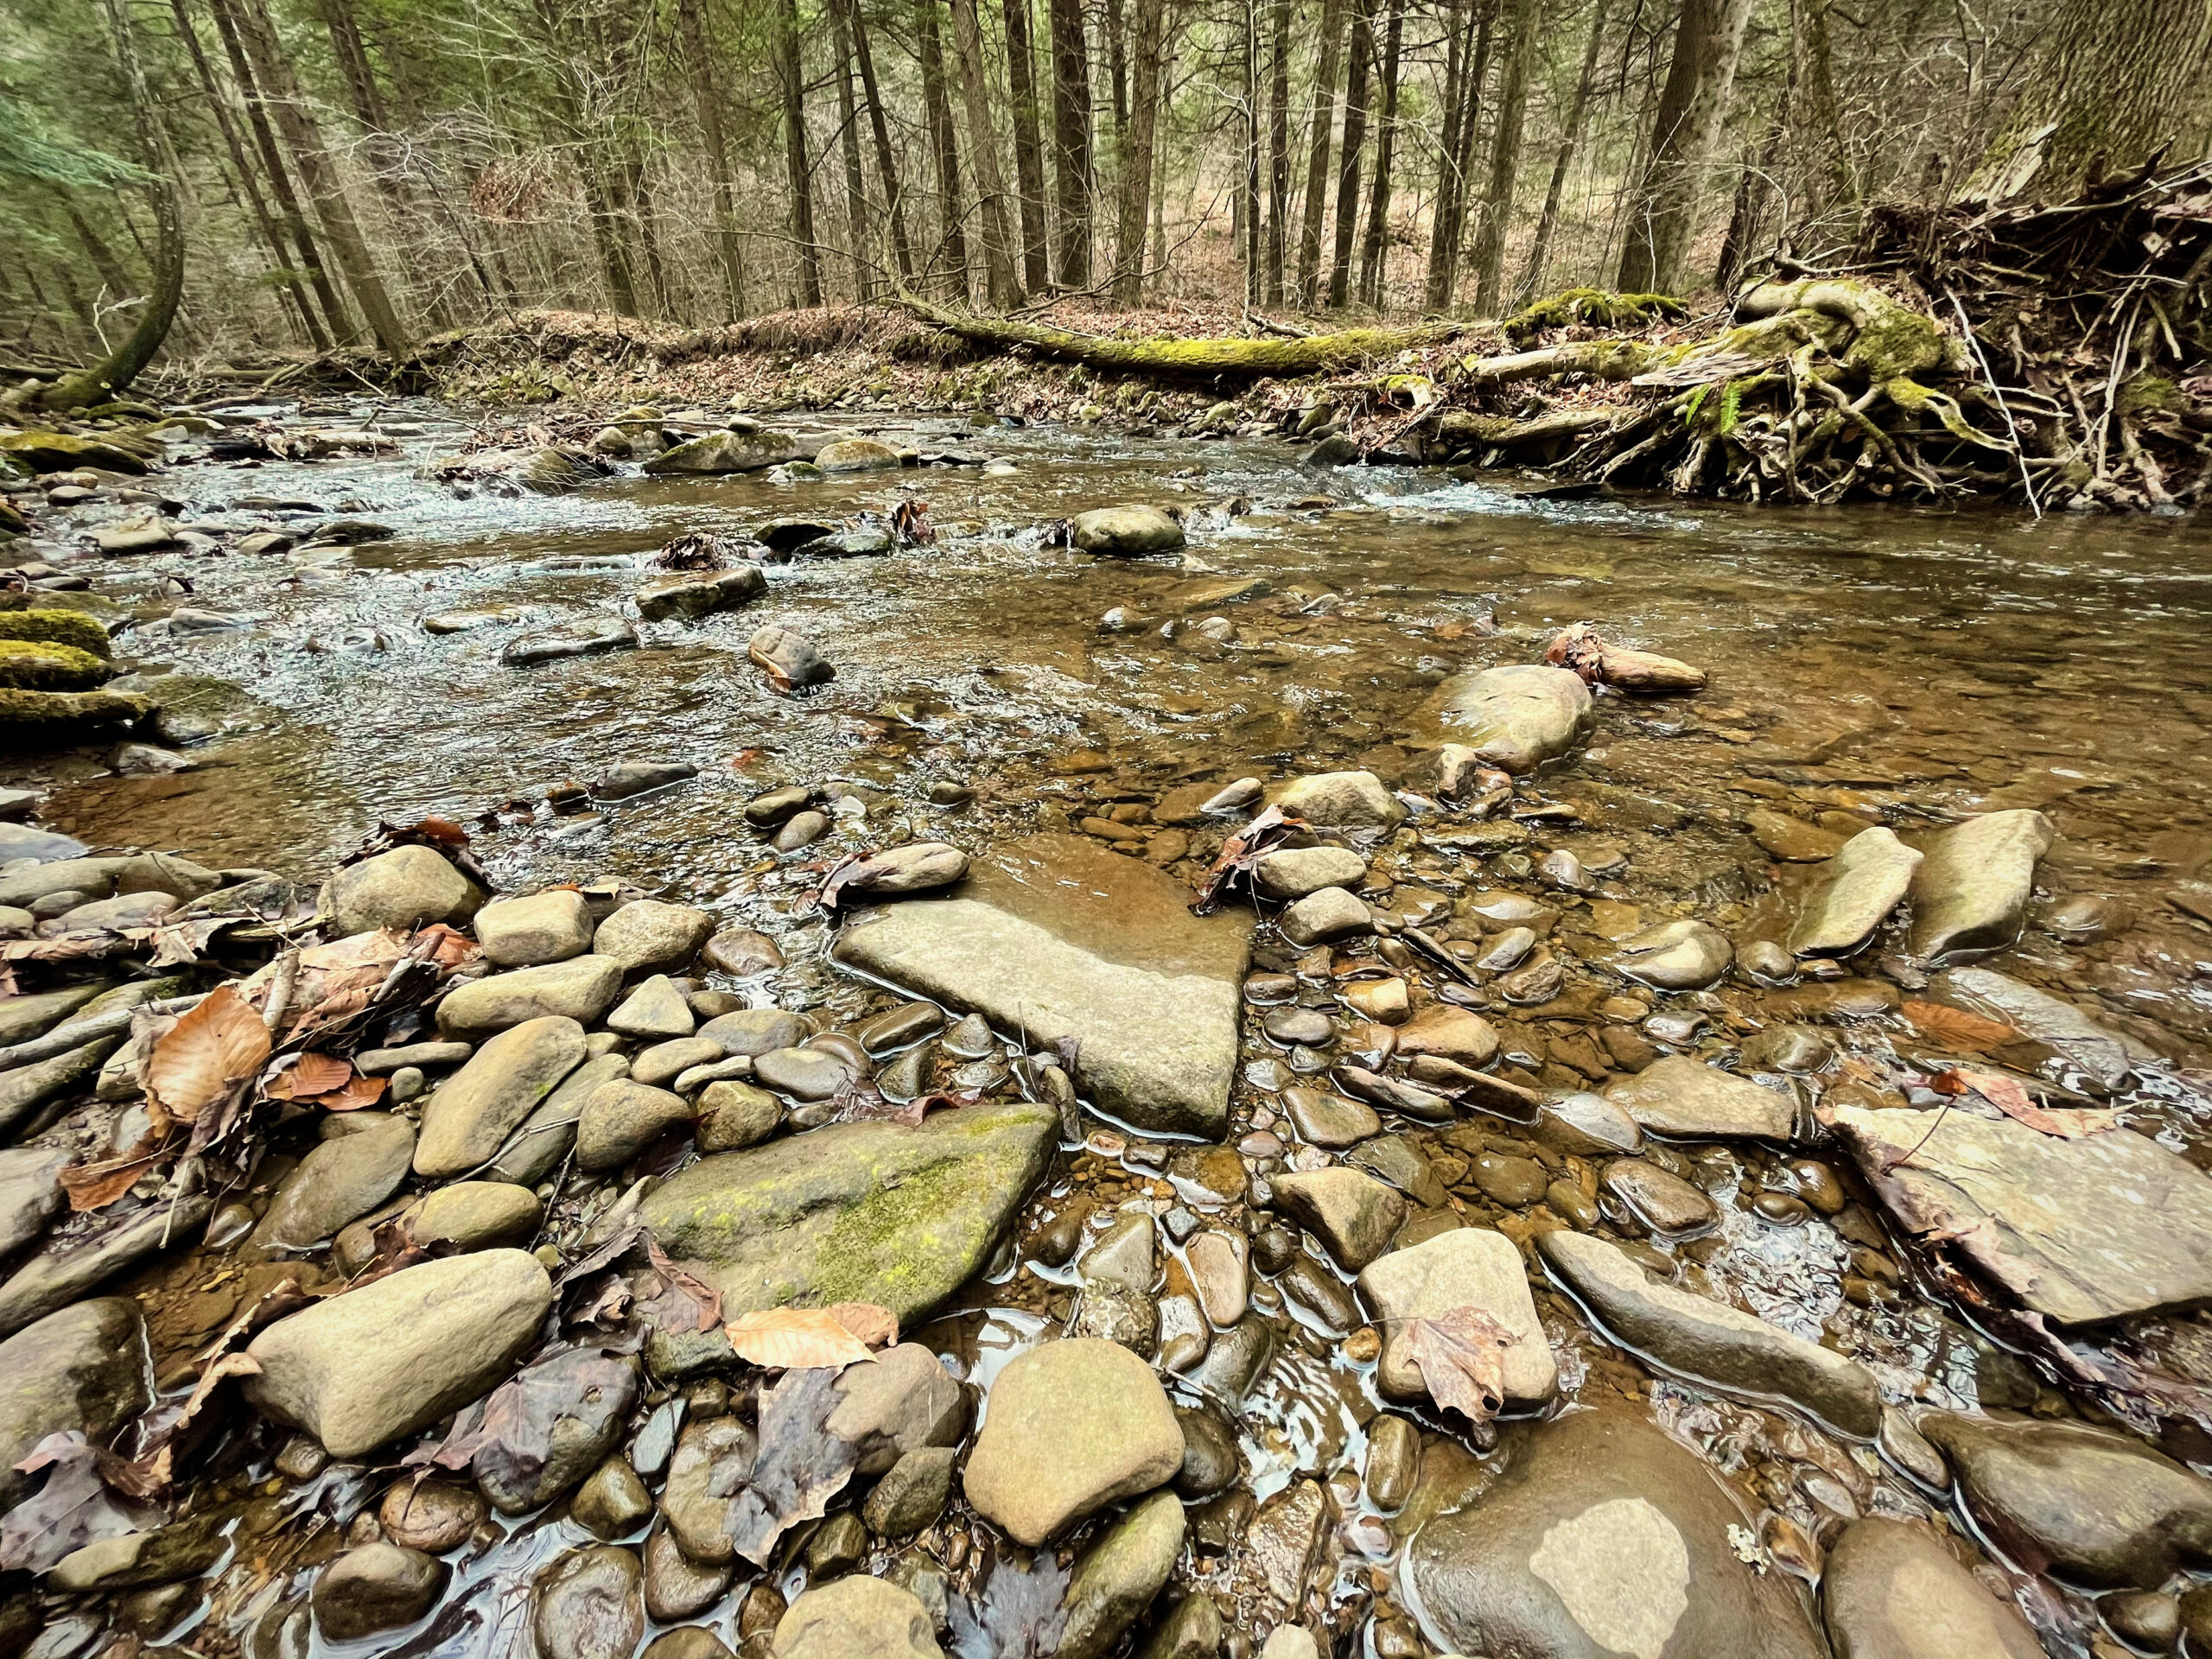 Ogdonia Creek with a wide-angle lens